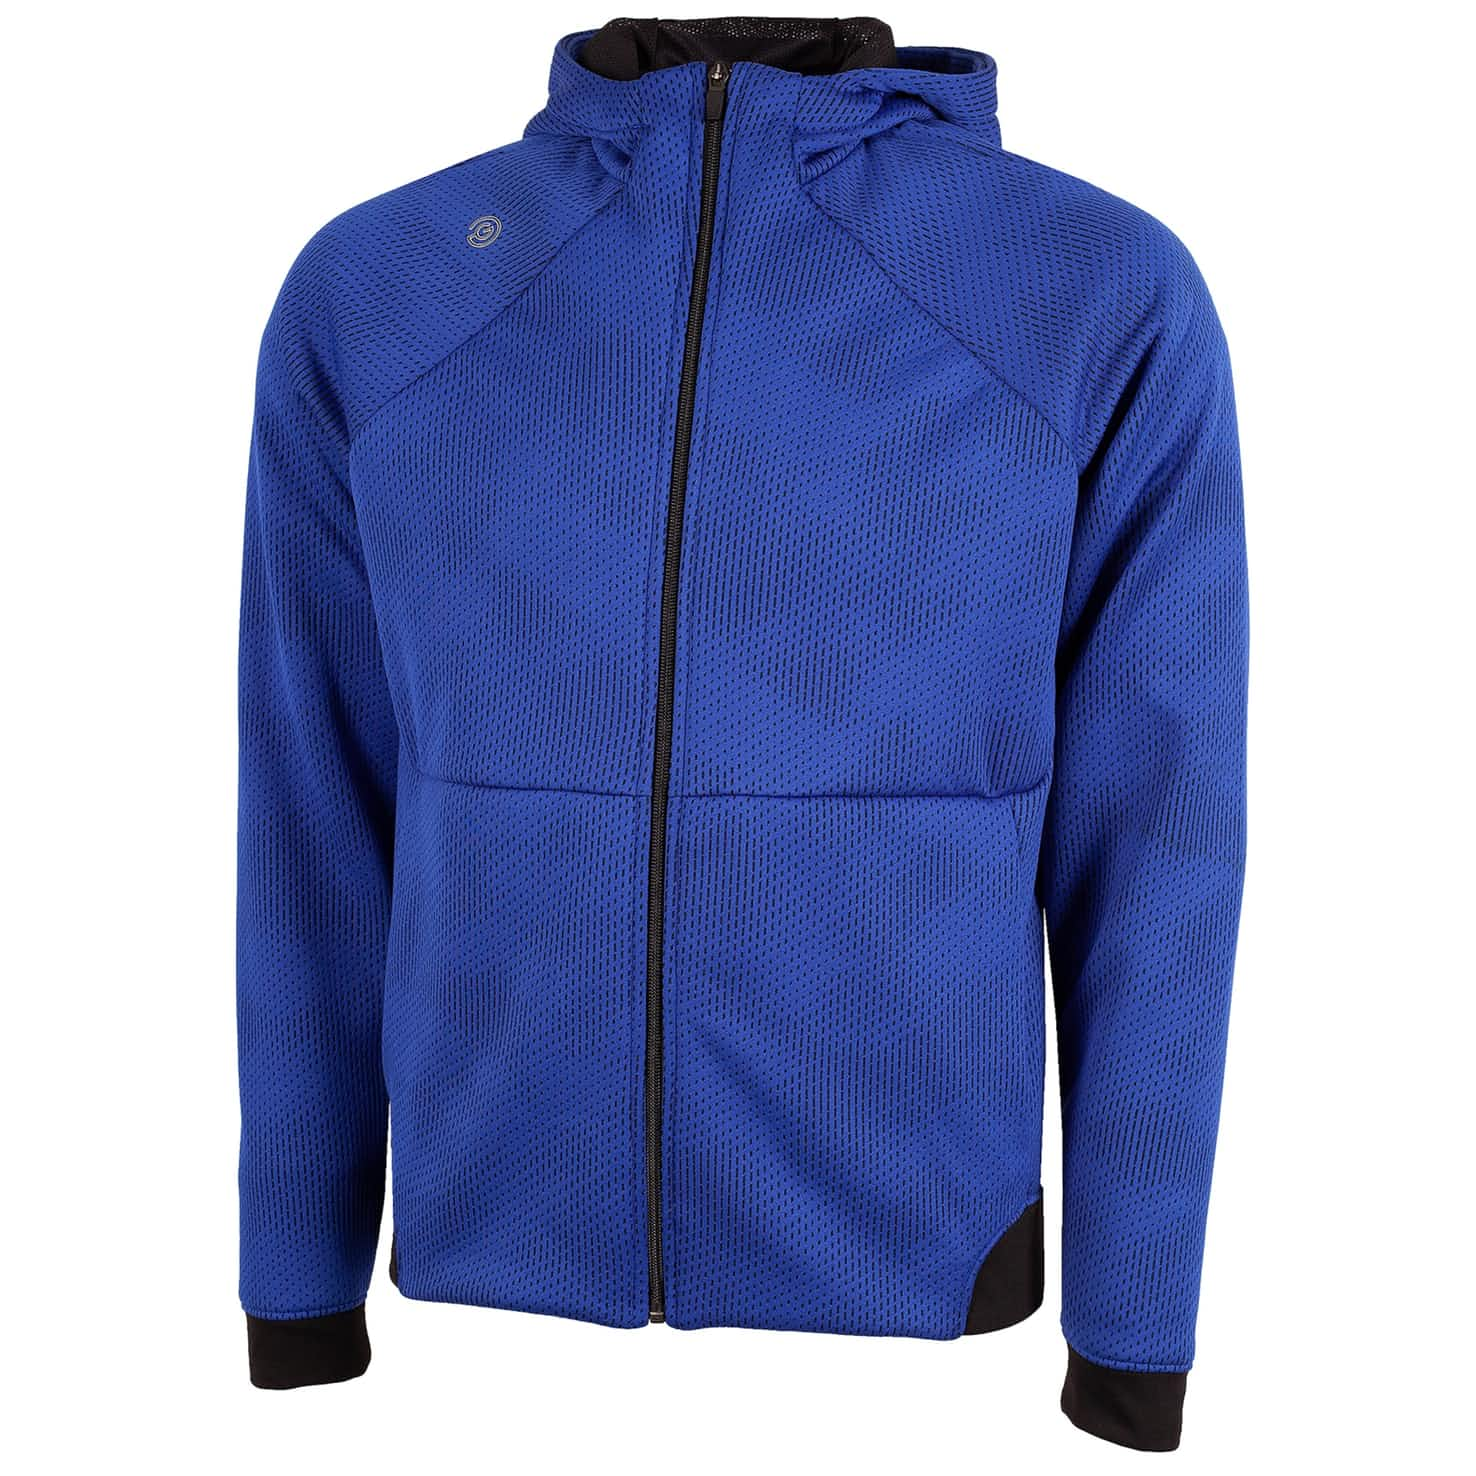 Dolph Insula Hooded Jacket Surf Blue/Black - SS20